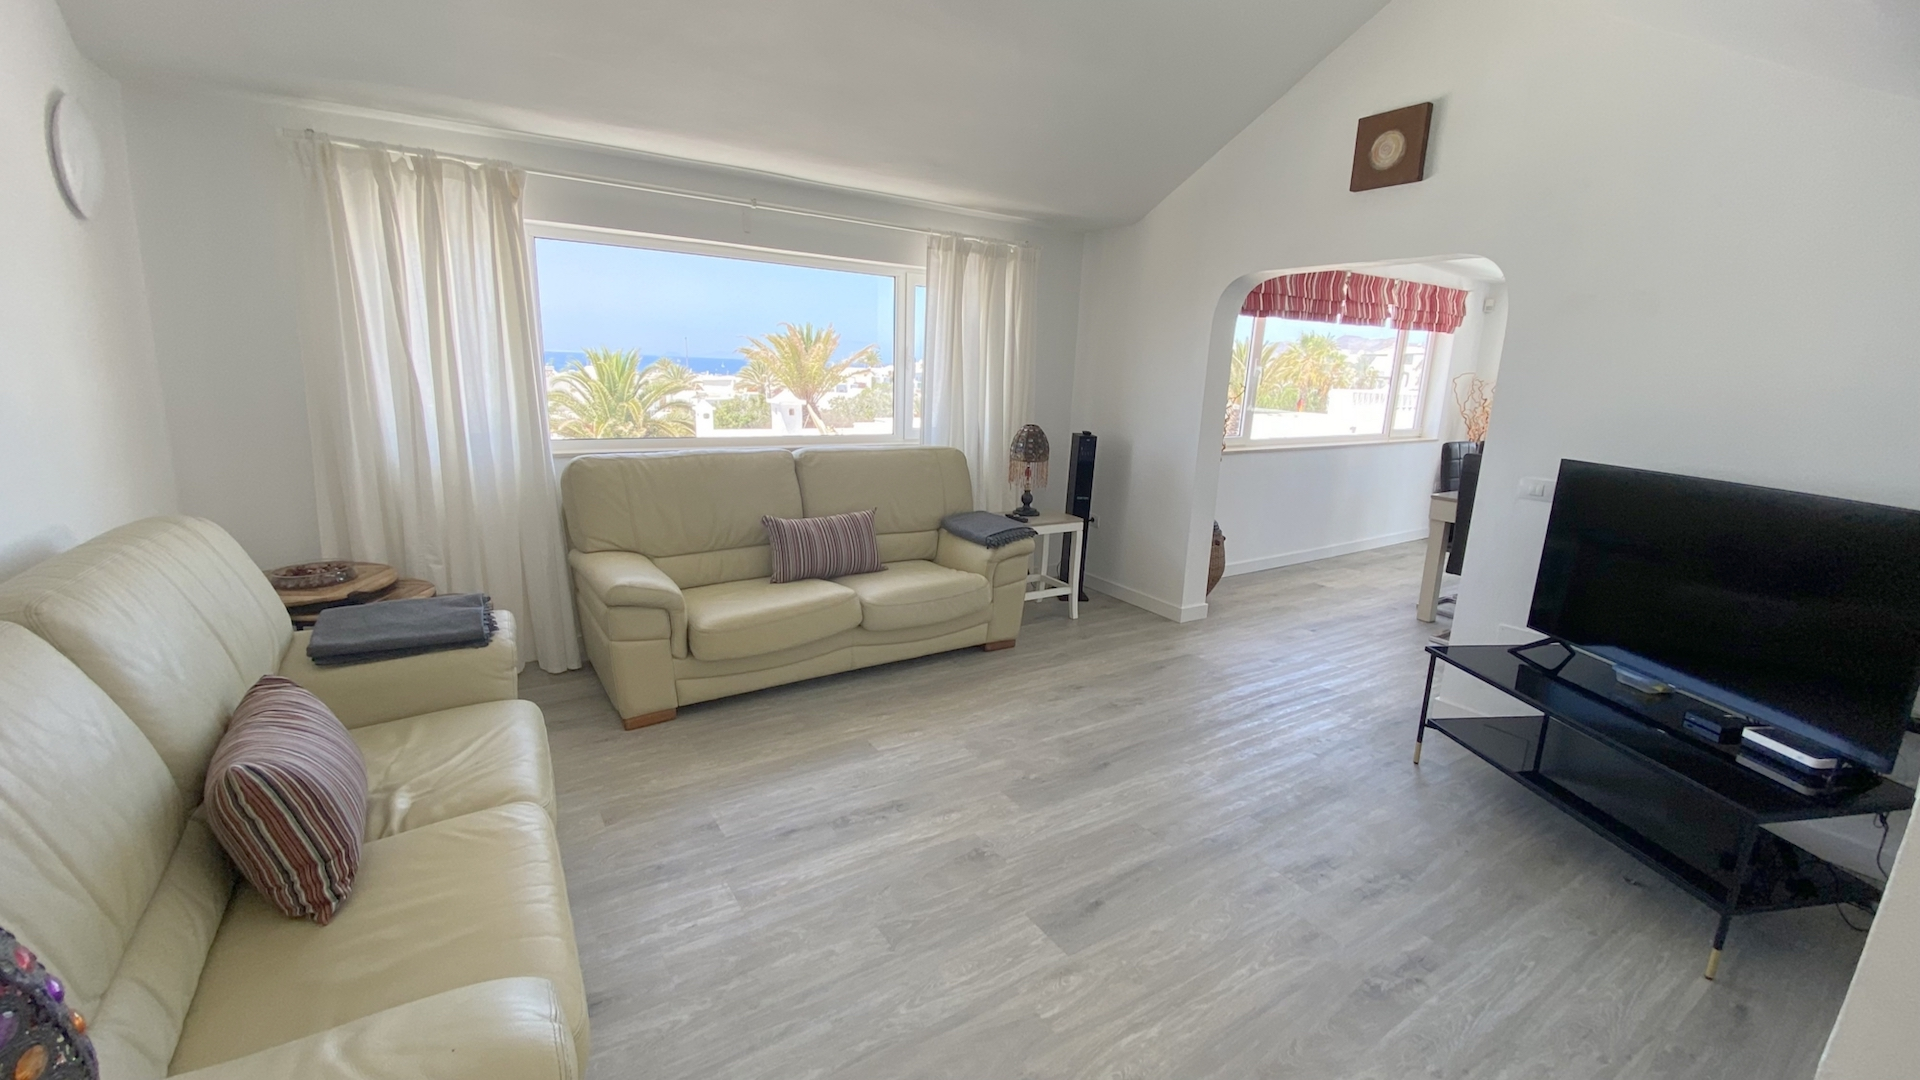 Villa Jessica with Sea views from Living room area